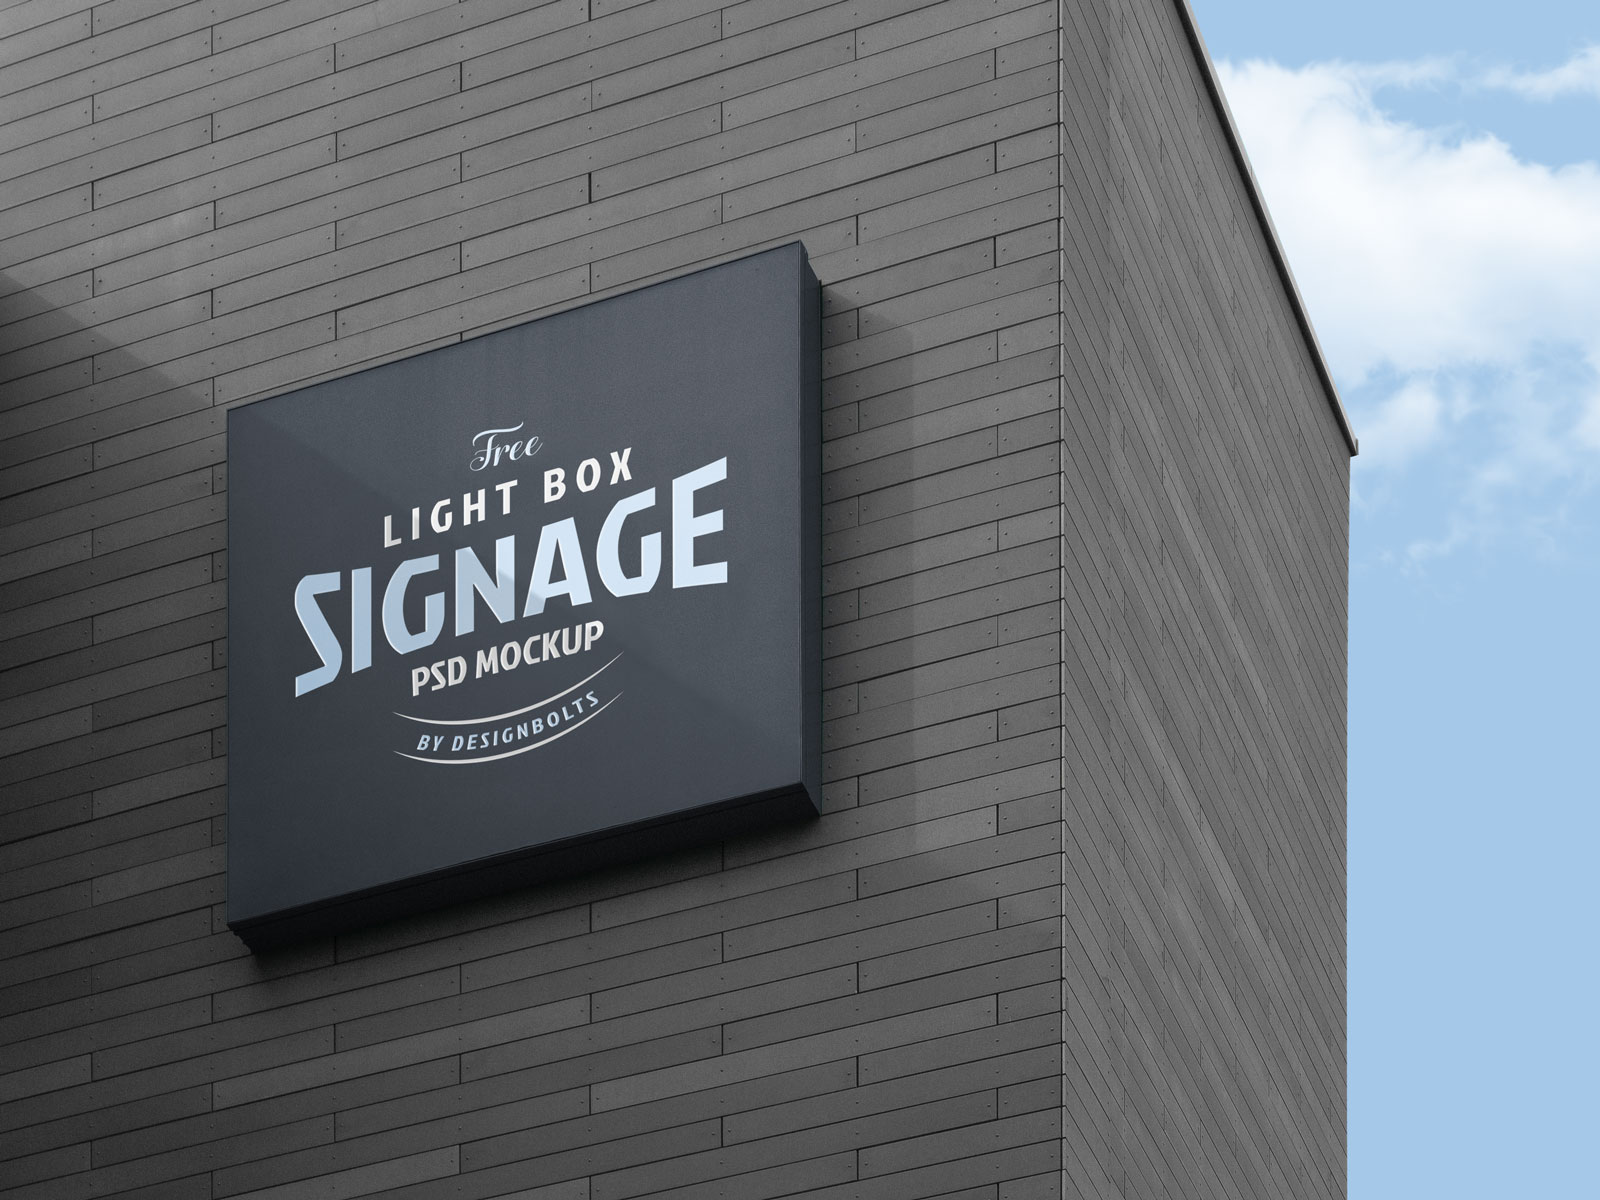 Free-Wall-Mounted-Company-Logo-Signage-Board-on-Building-Mockup-PSD